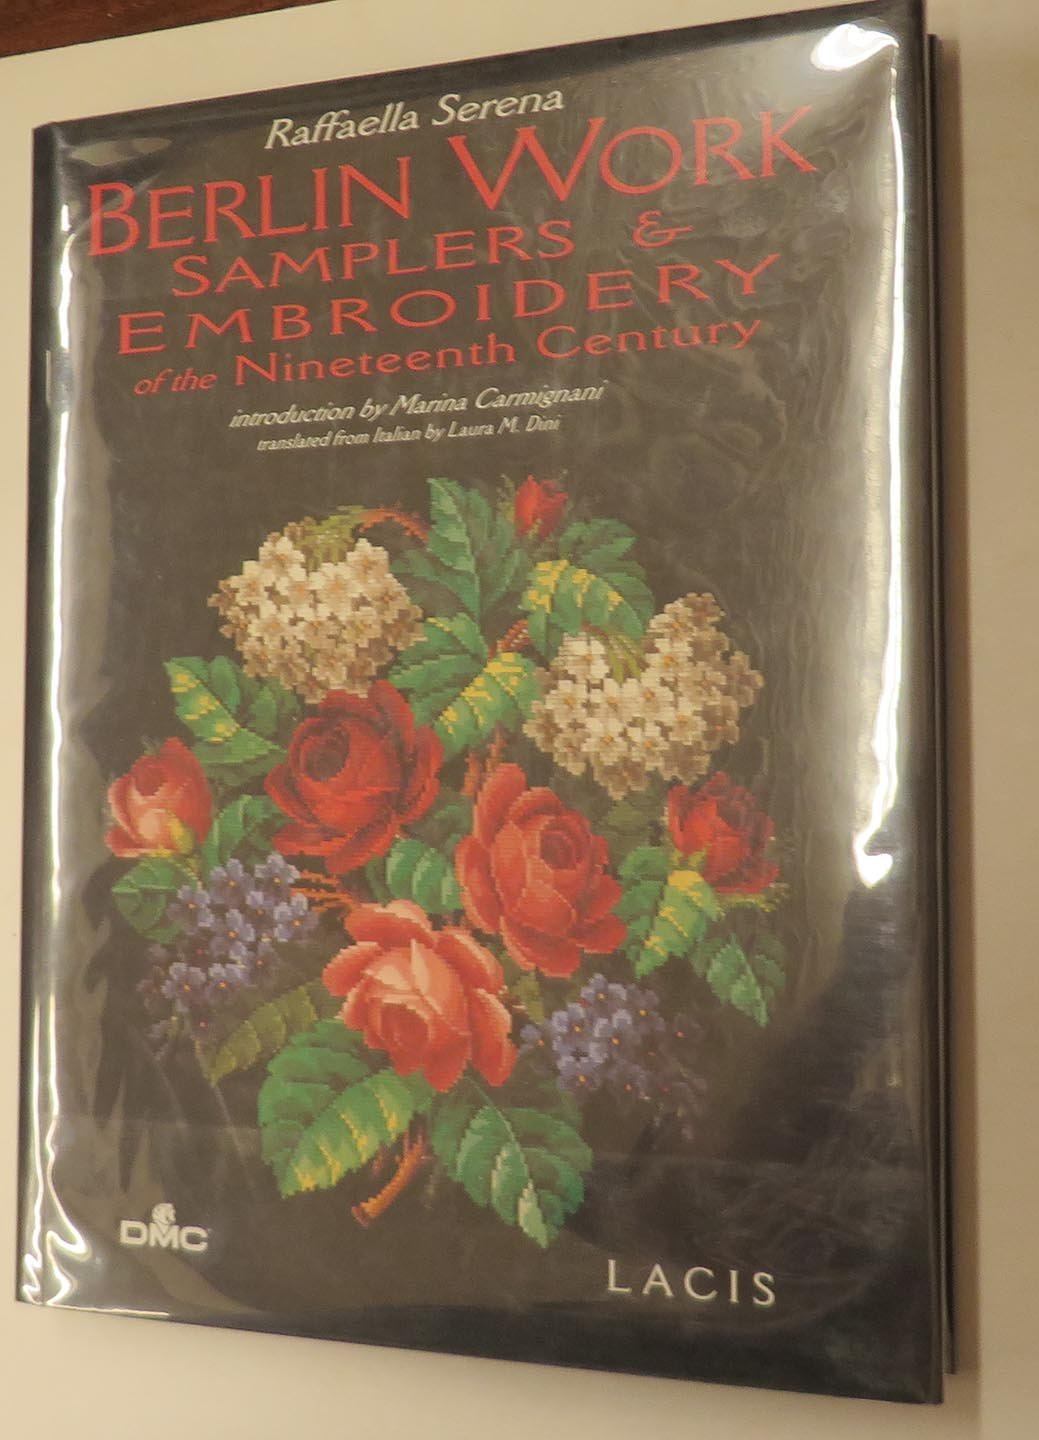 Berlin Work: Samplers and Embroidery of the Nineteenth Century